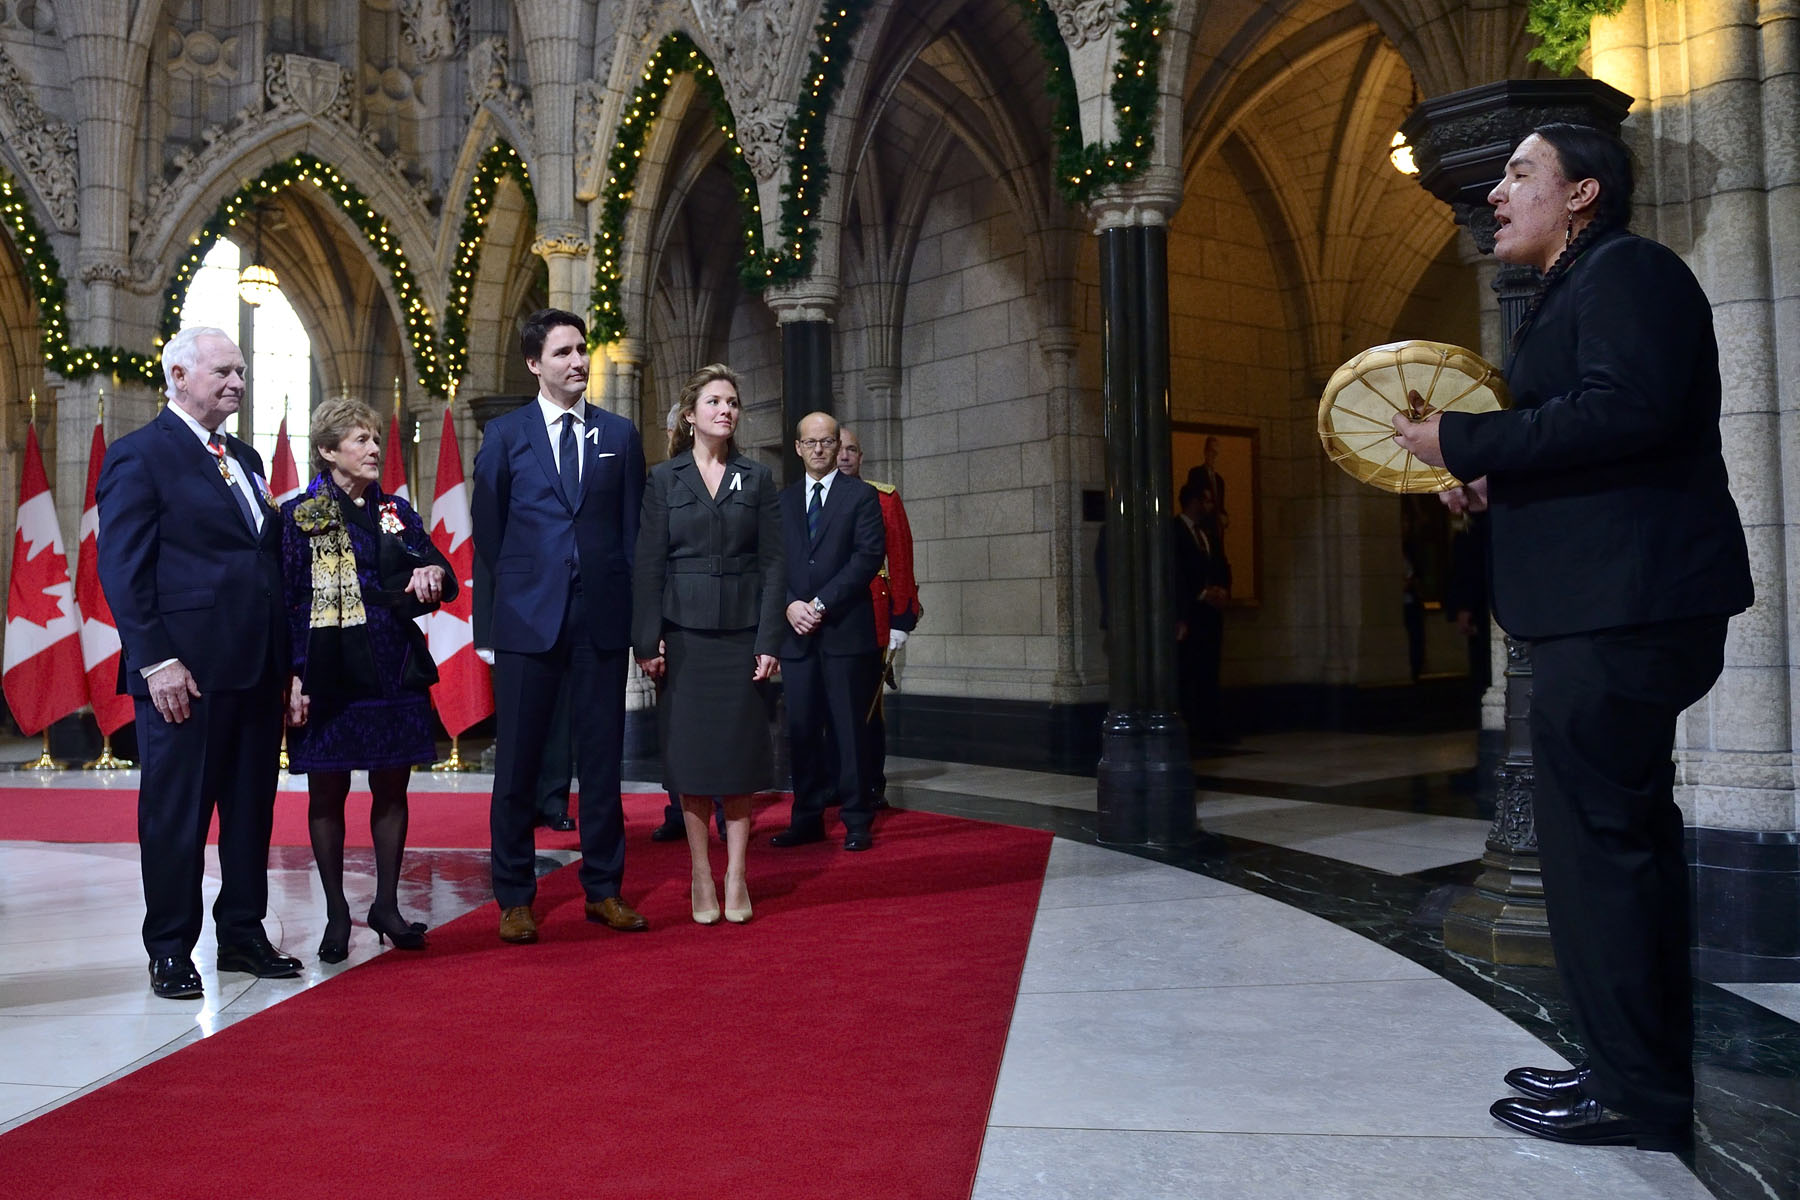 In the Hall of Honour, the Governor General, Her Excellency Sharon Johnston, the Right Honourable Justin Trudeau, Prime Minister of Canada, and Sophie Grégoire-Trudeau listened to an honour song.